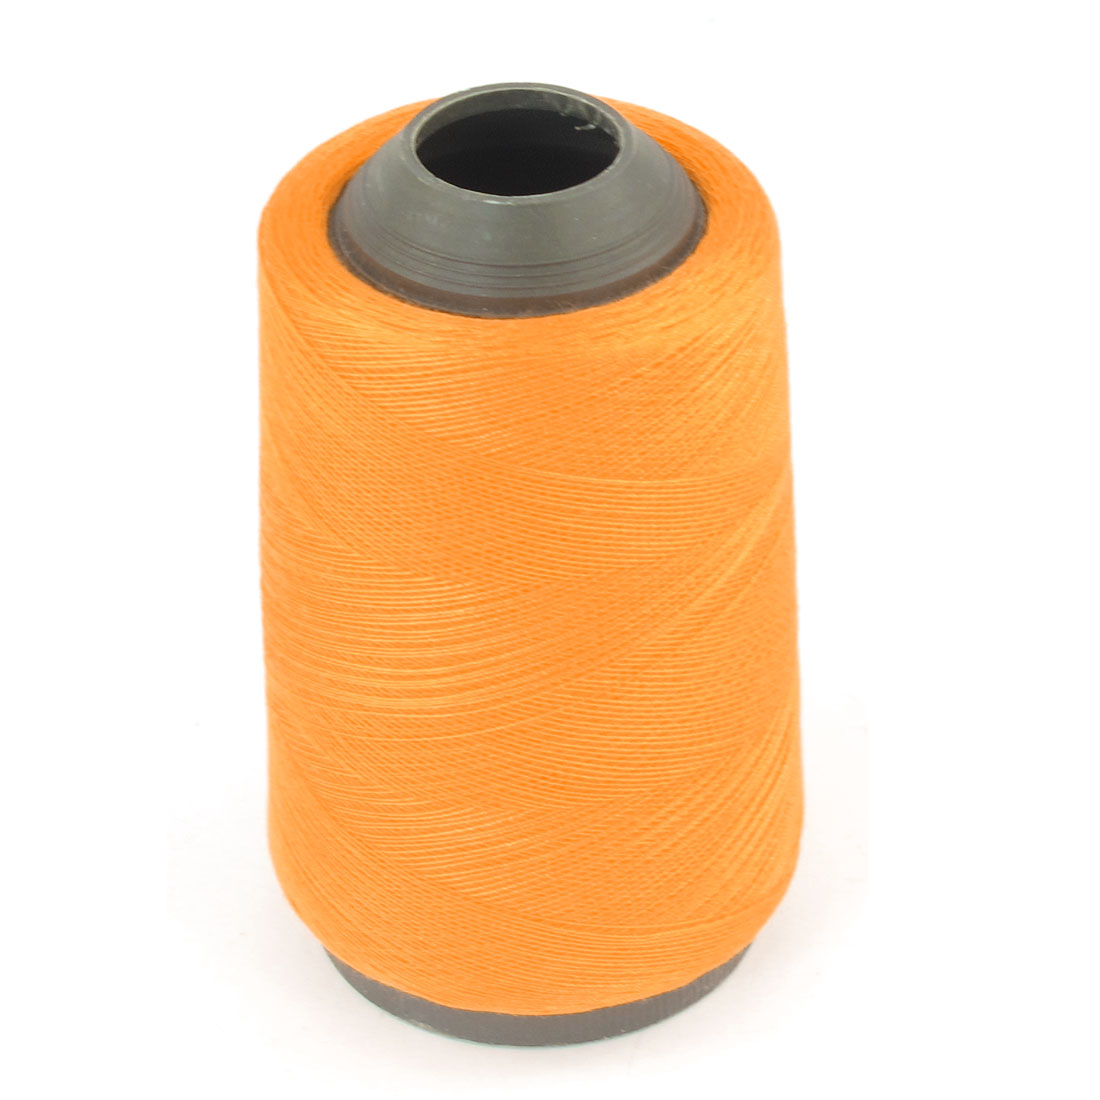 Home Cotton Cross Stitch Embroidery Sewing Thread Spools Orange